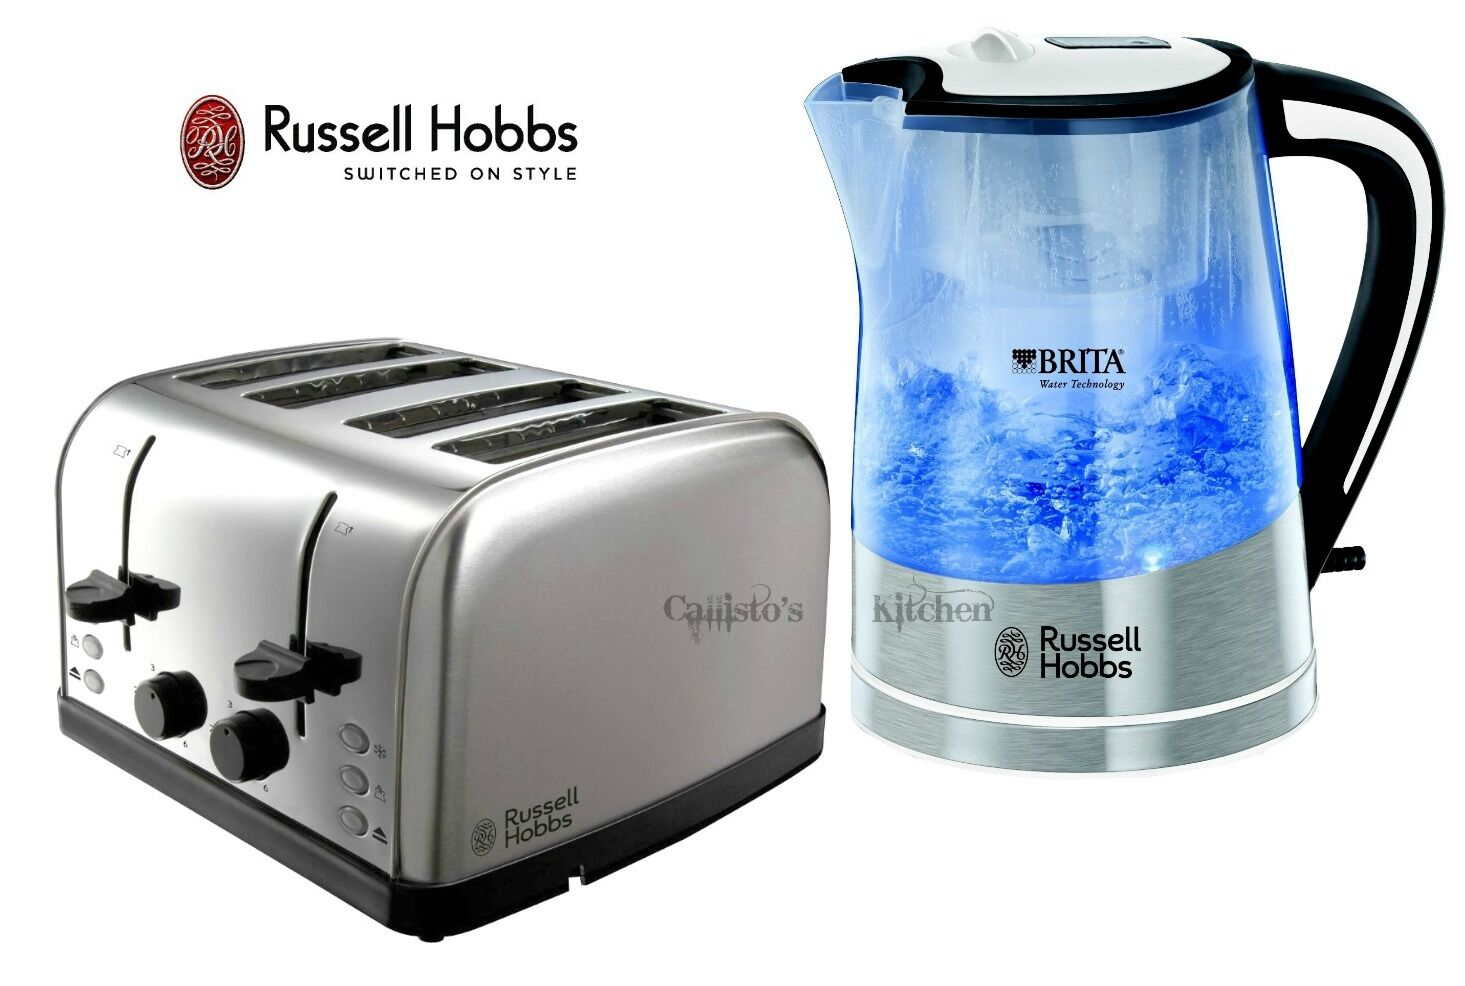 kettle and toaster set russell hobbs brita filter kettle and 4 slice toaster new. Black Bedroom Furniture Sets. Home Design Ideas